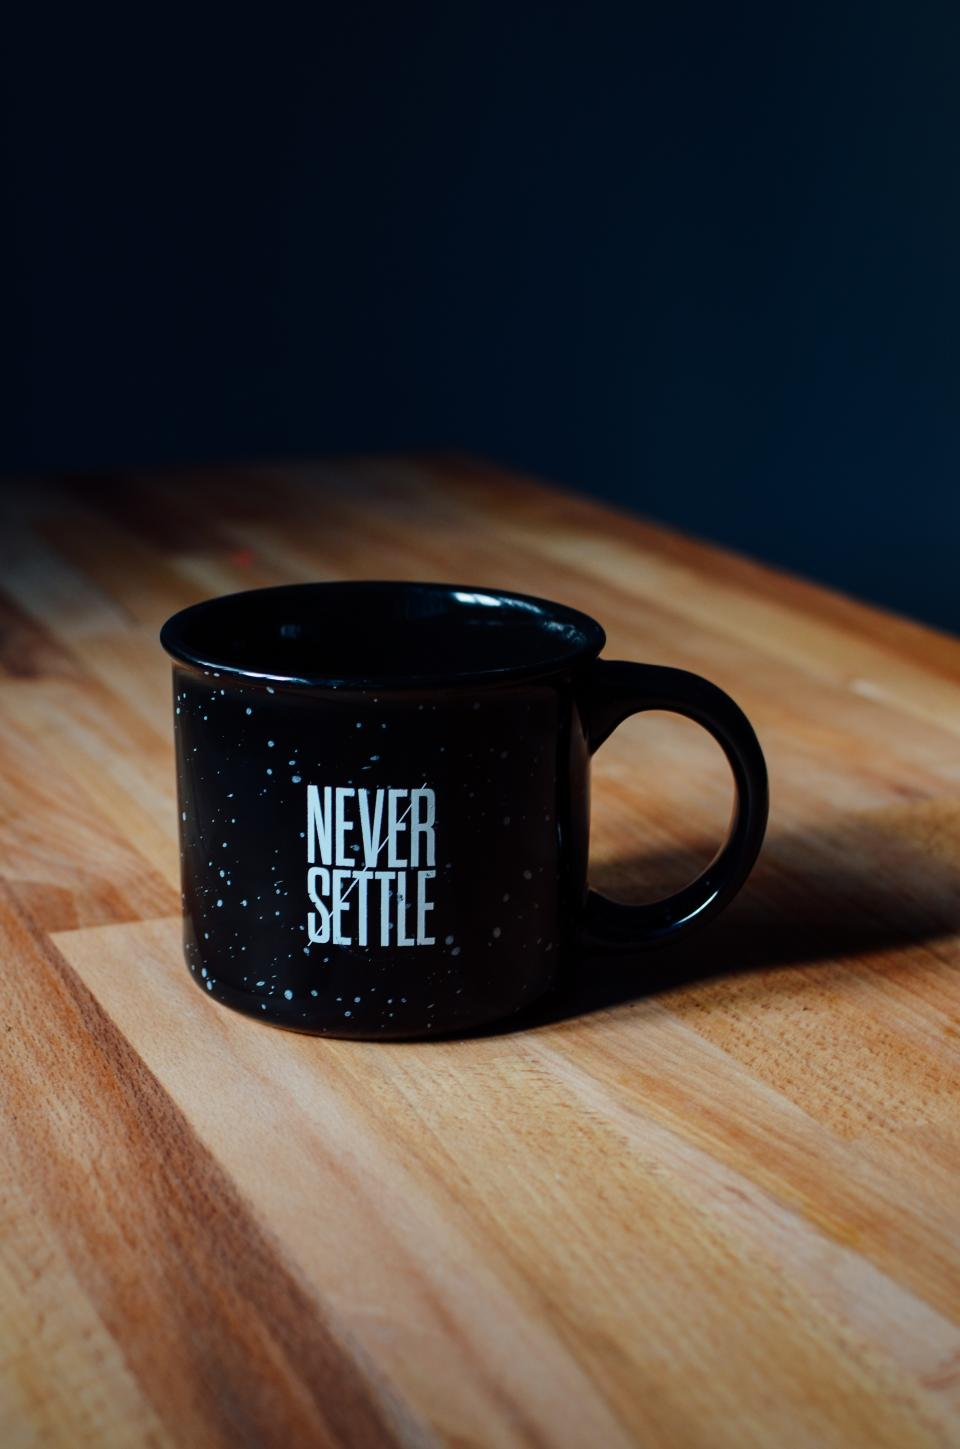 quote statement cup mug black table wood